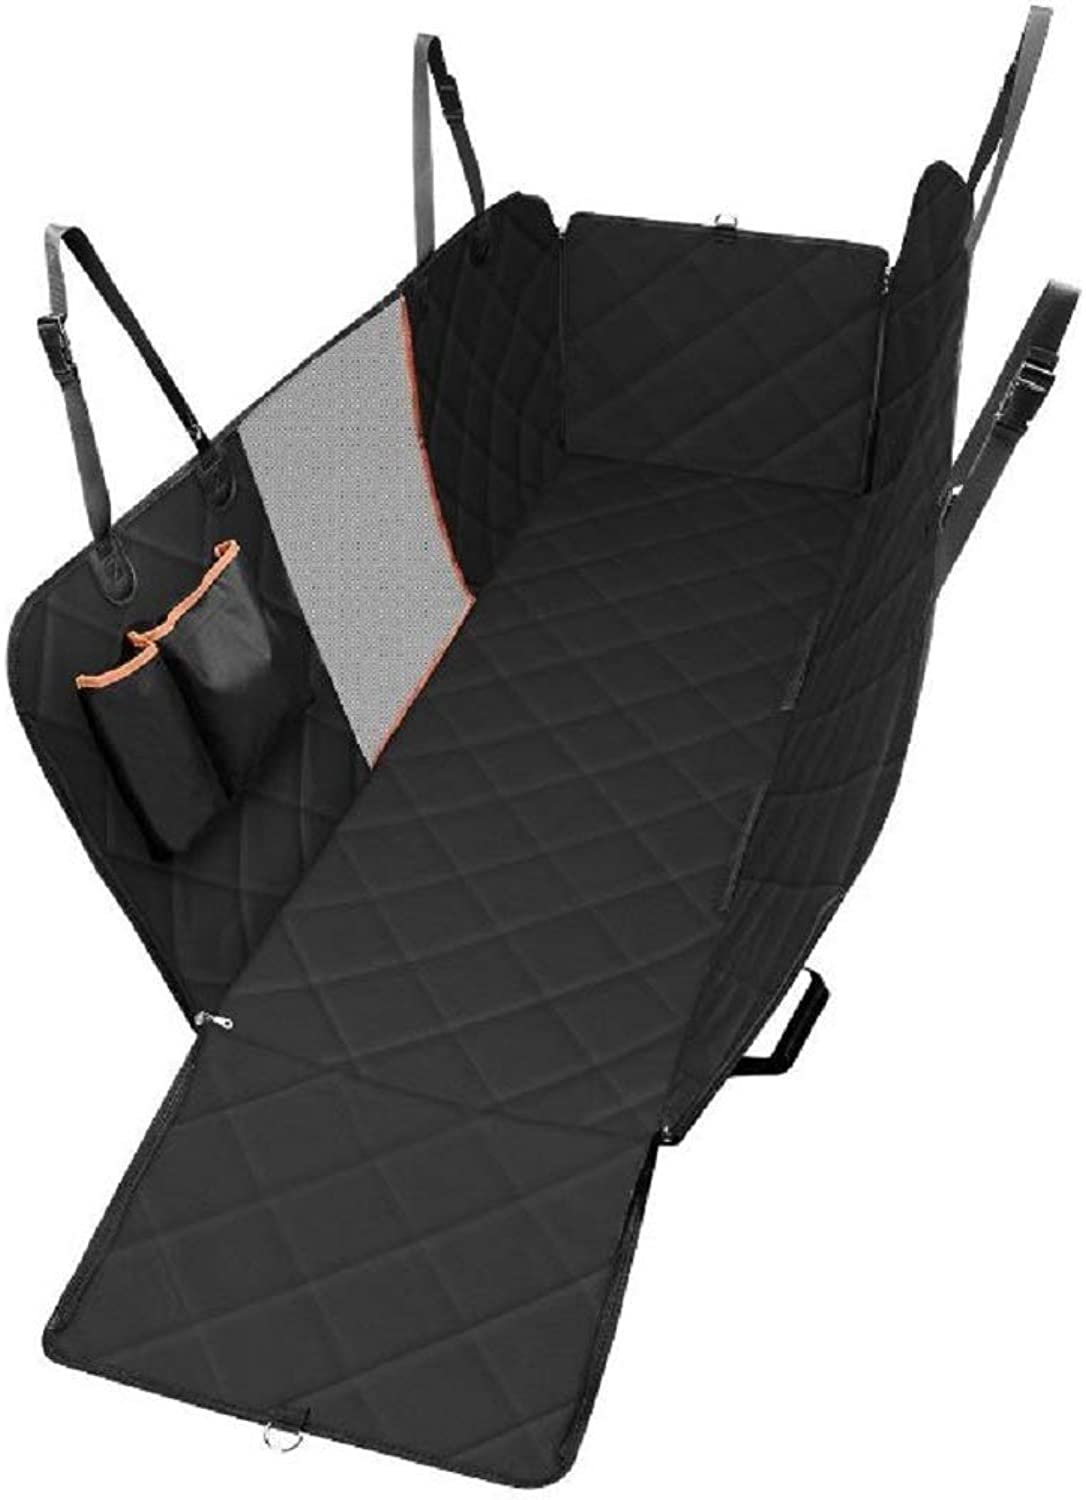 GDDYQ Dog Car Mat, Waterproof and ScratchProof Dog Hammock and Car Seat Cover With Storage Bag and Mesh Viewing Window